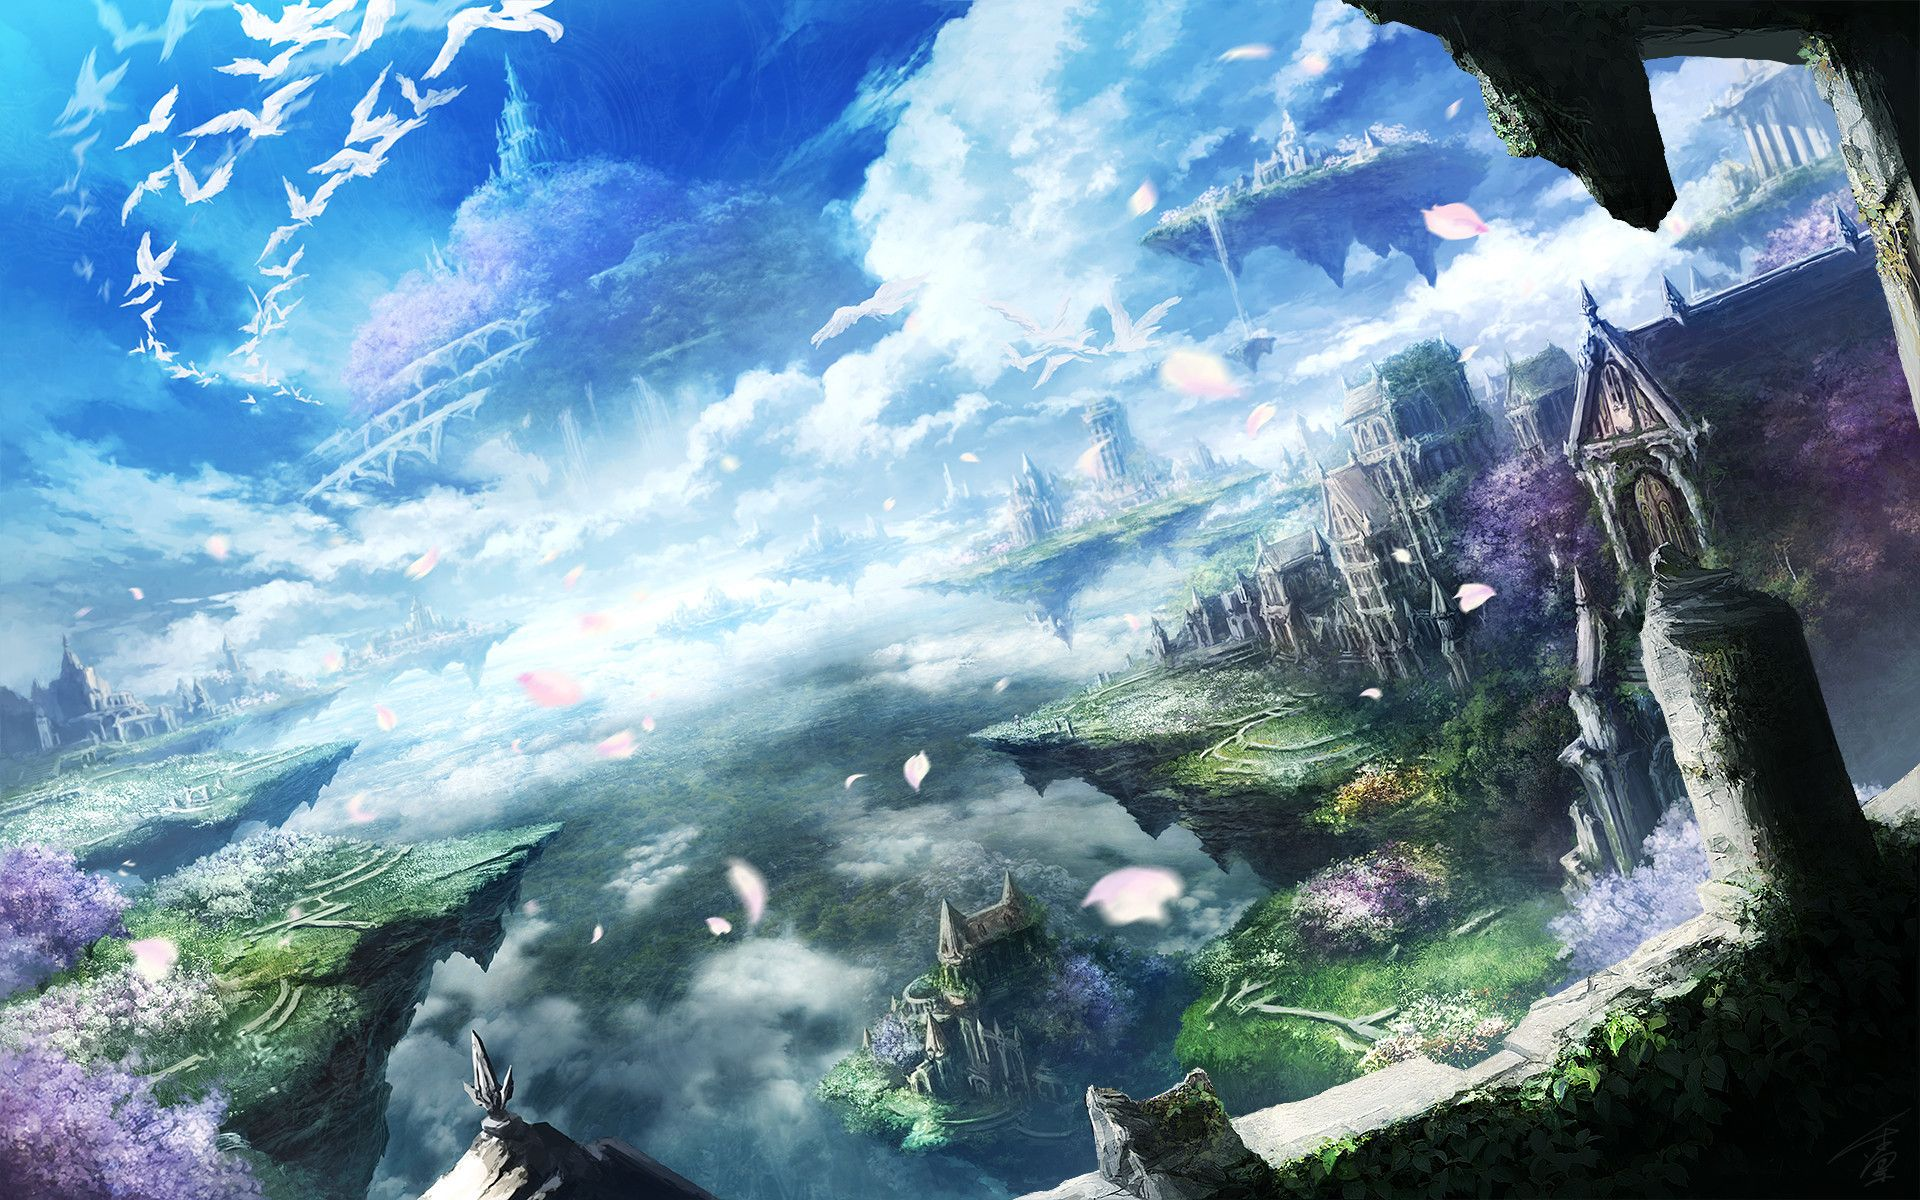 25 Anime Wallpapers Hd Download Free Stunning Hd: Beautiful Anime Wallpapers